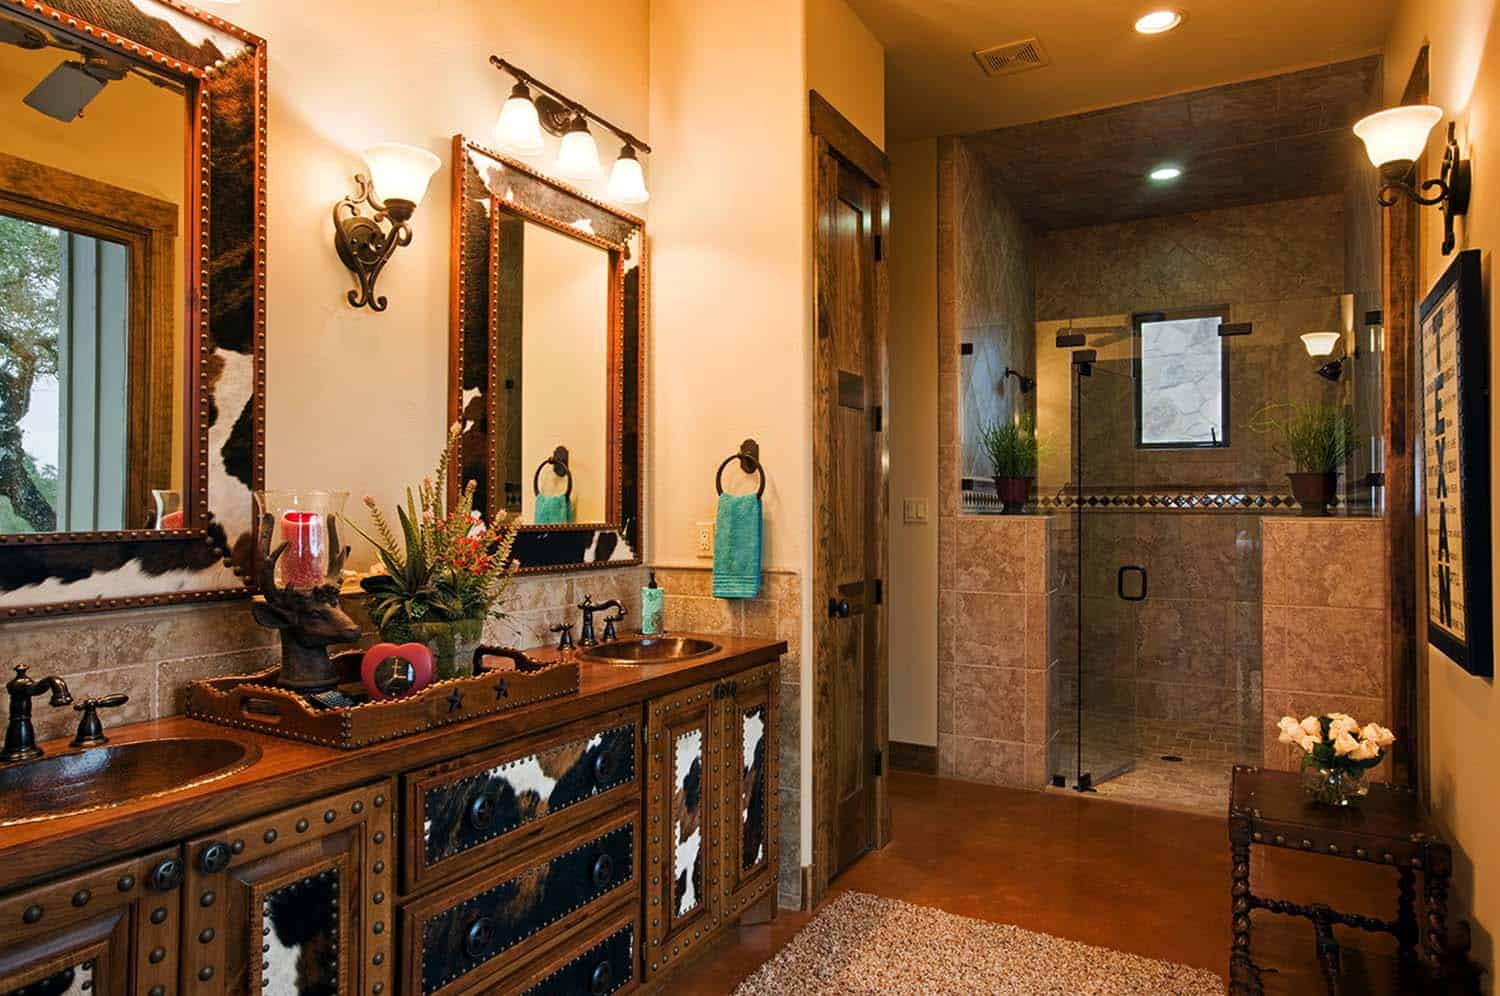 Bathroom Ideas Ranch Home: Rustic Ranch House Designed For Family Gatherings In Texas